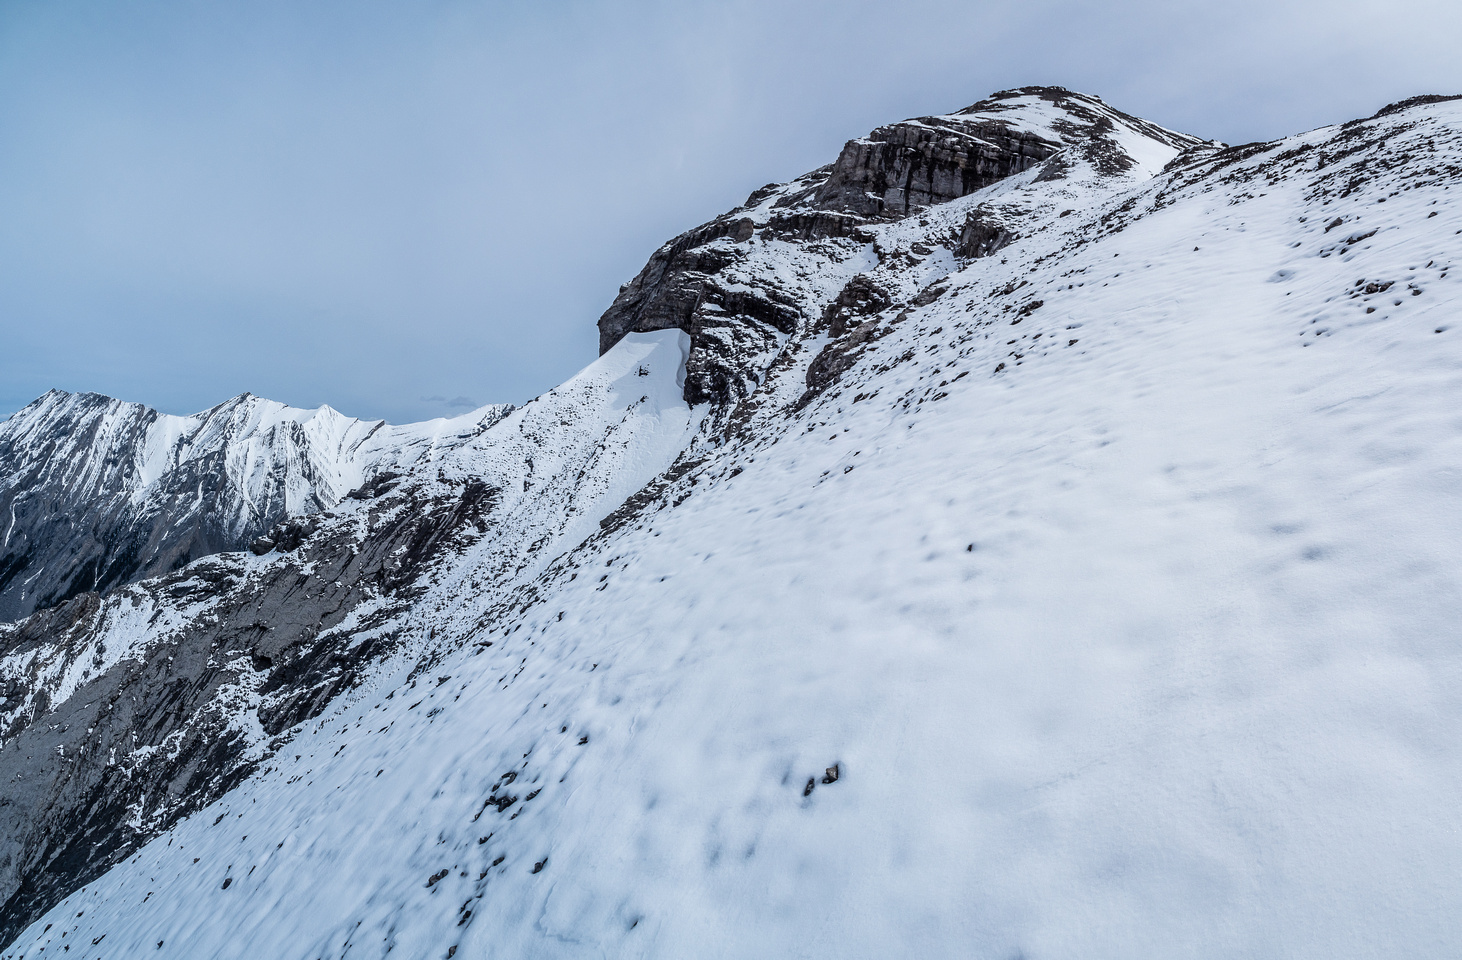 Looking up to the col and ascent slope to the summit ridge.